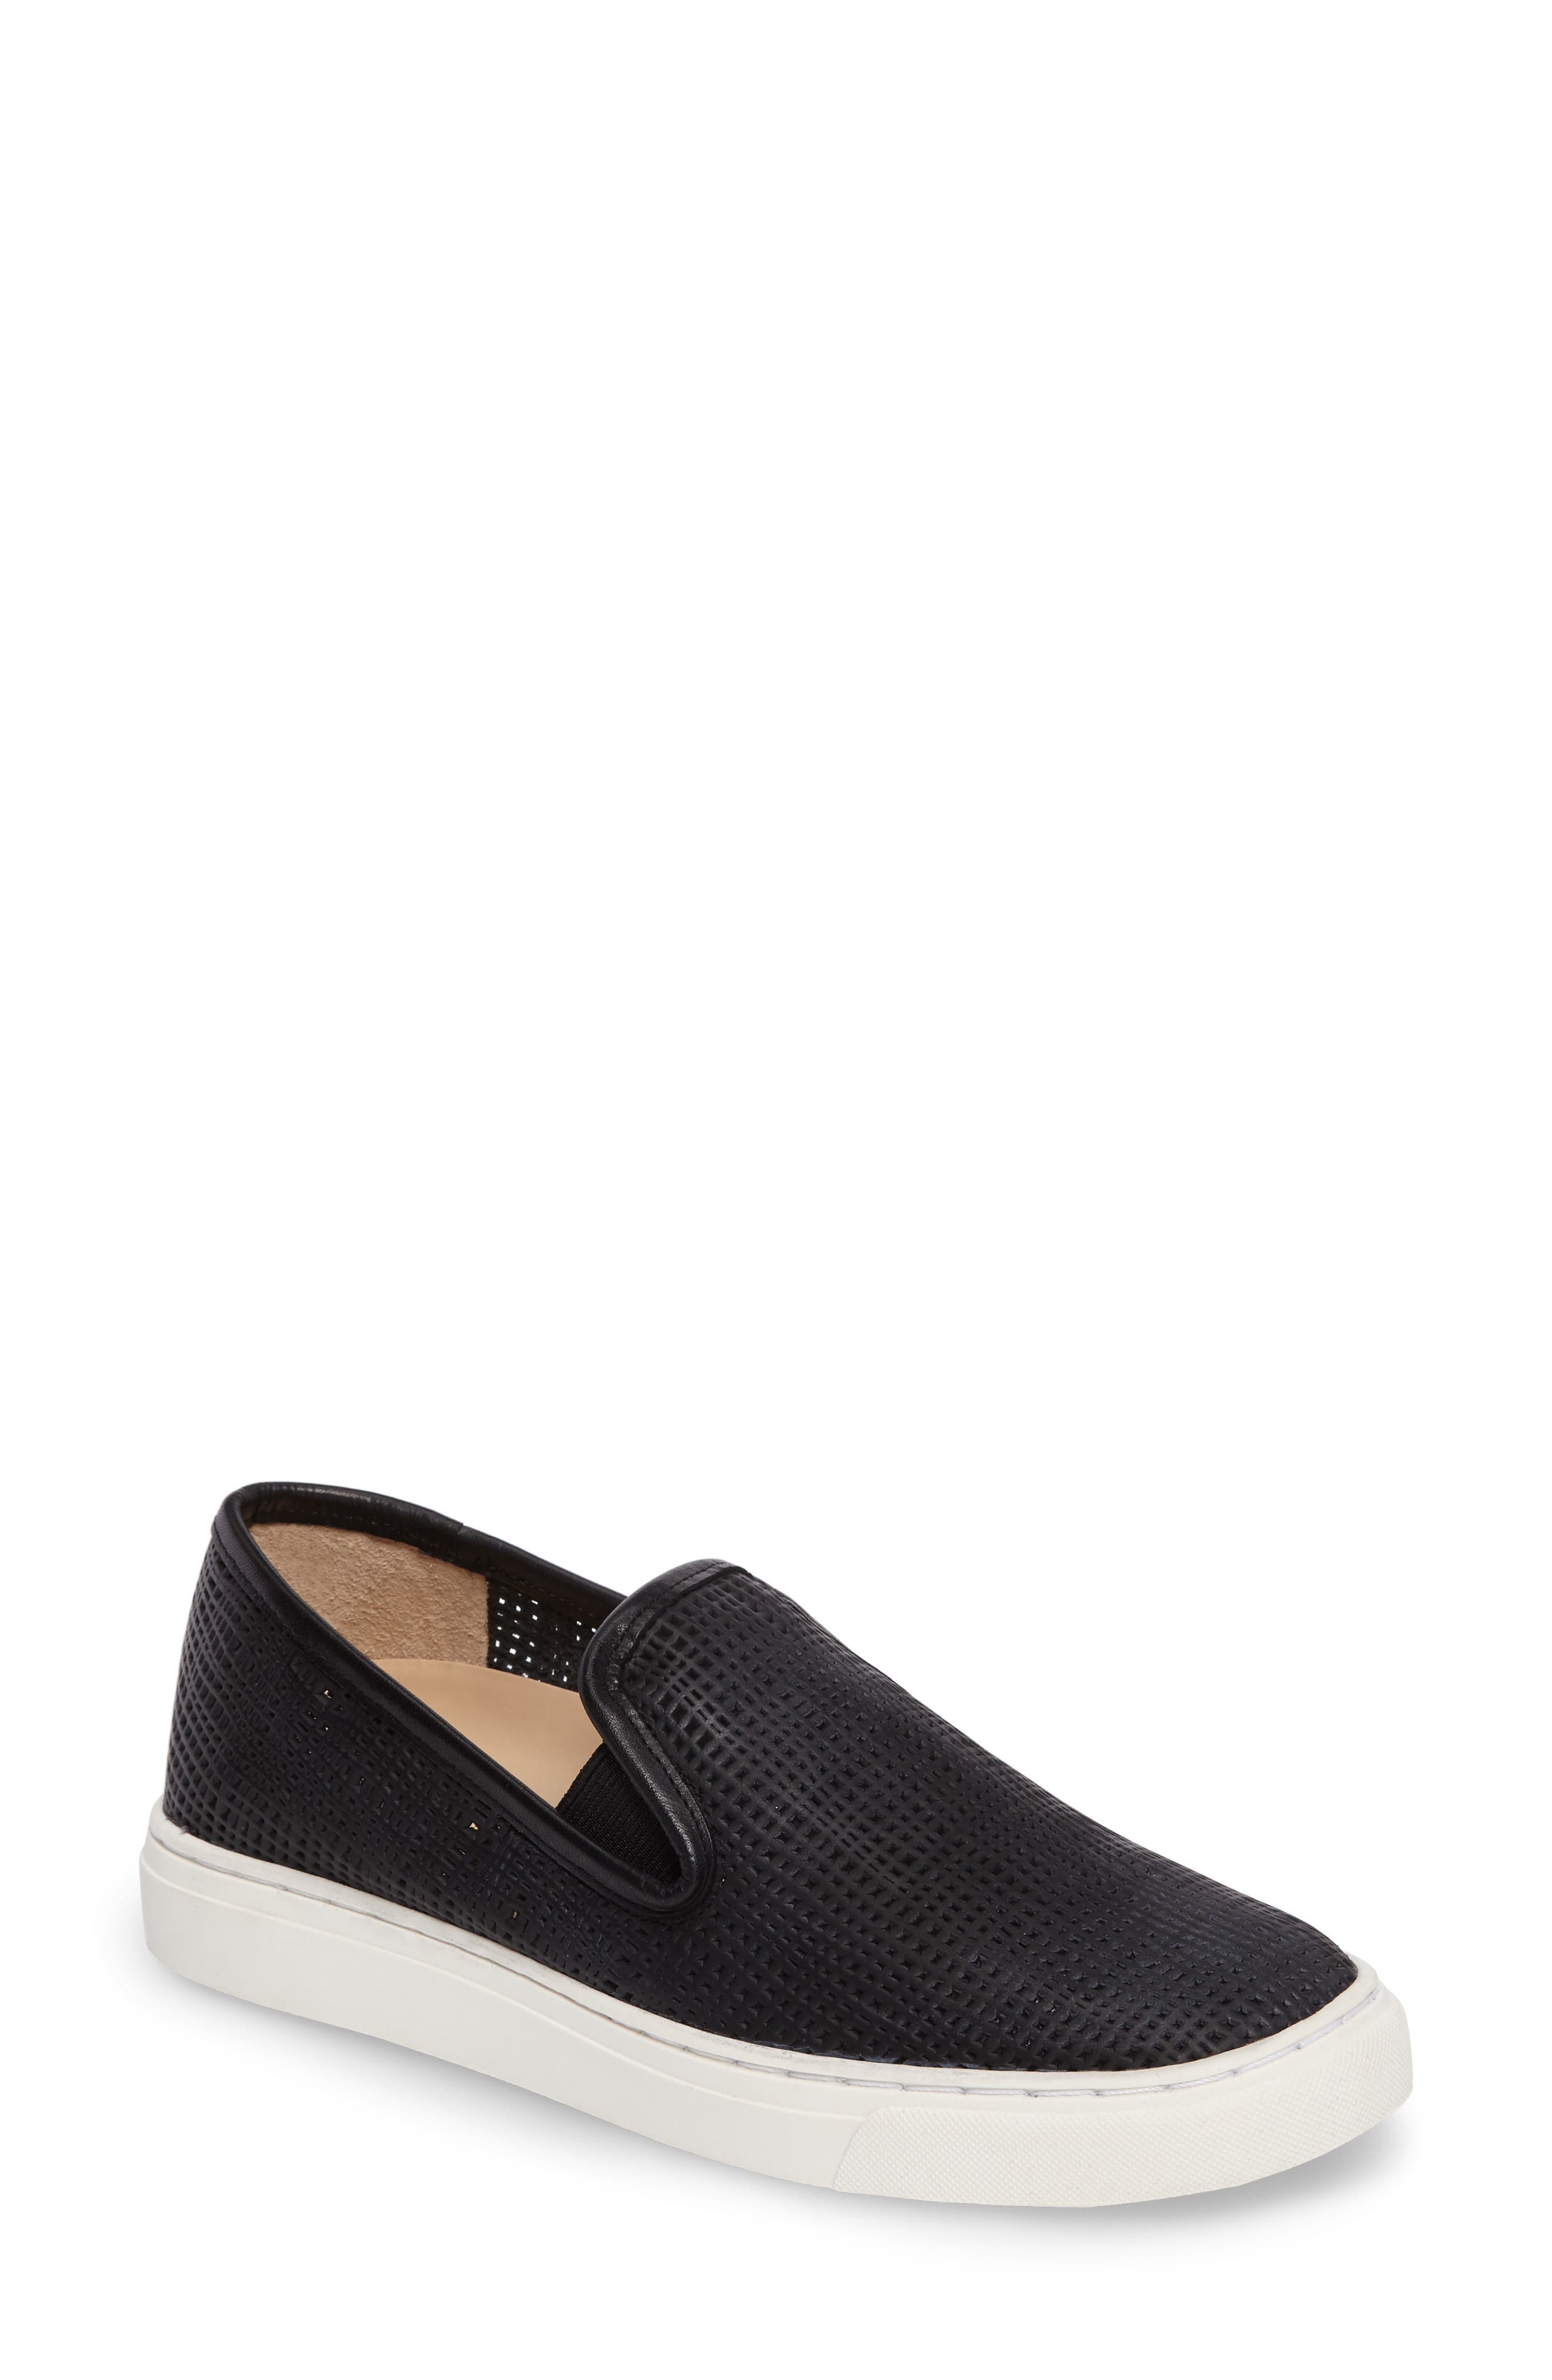 Becker Perforated Slip-On Sneaker,                         Main,                         color, 001